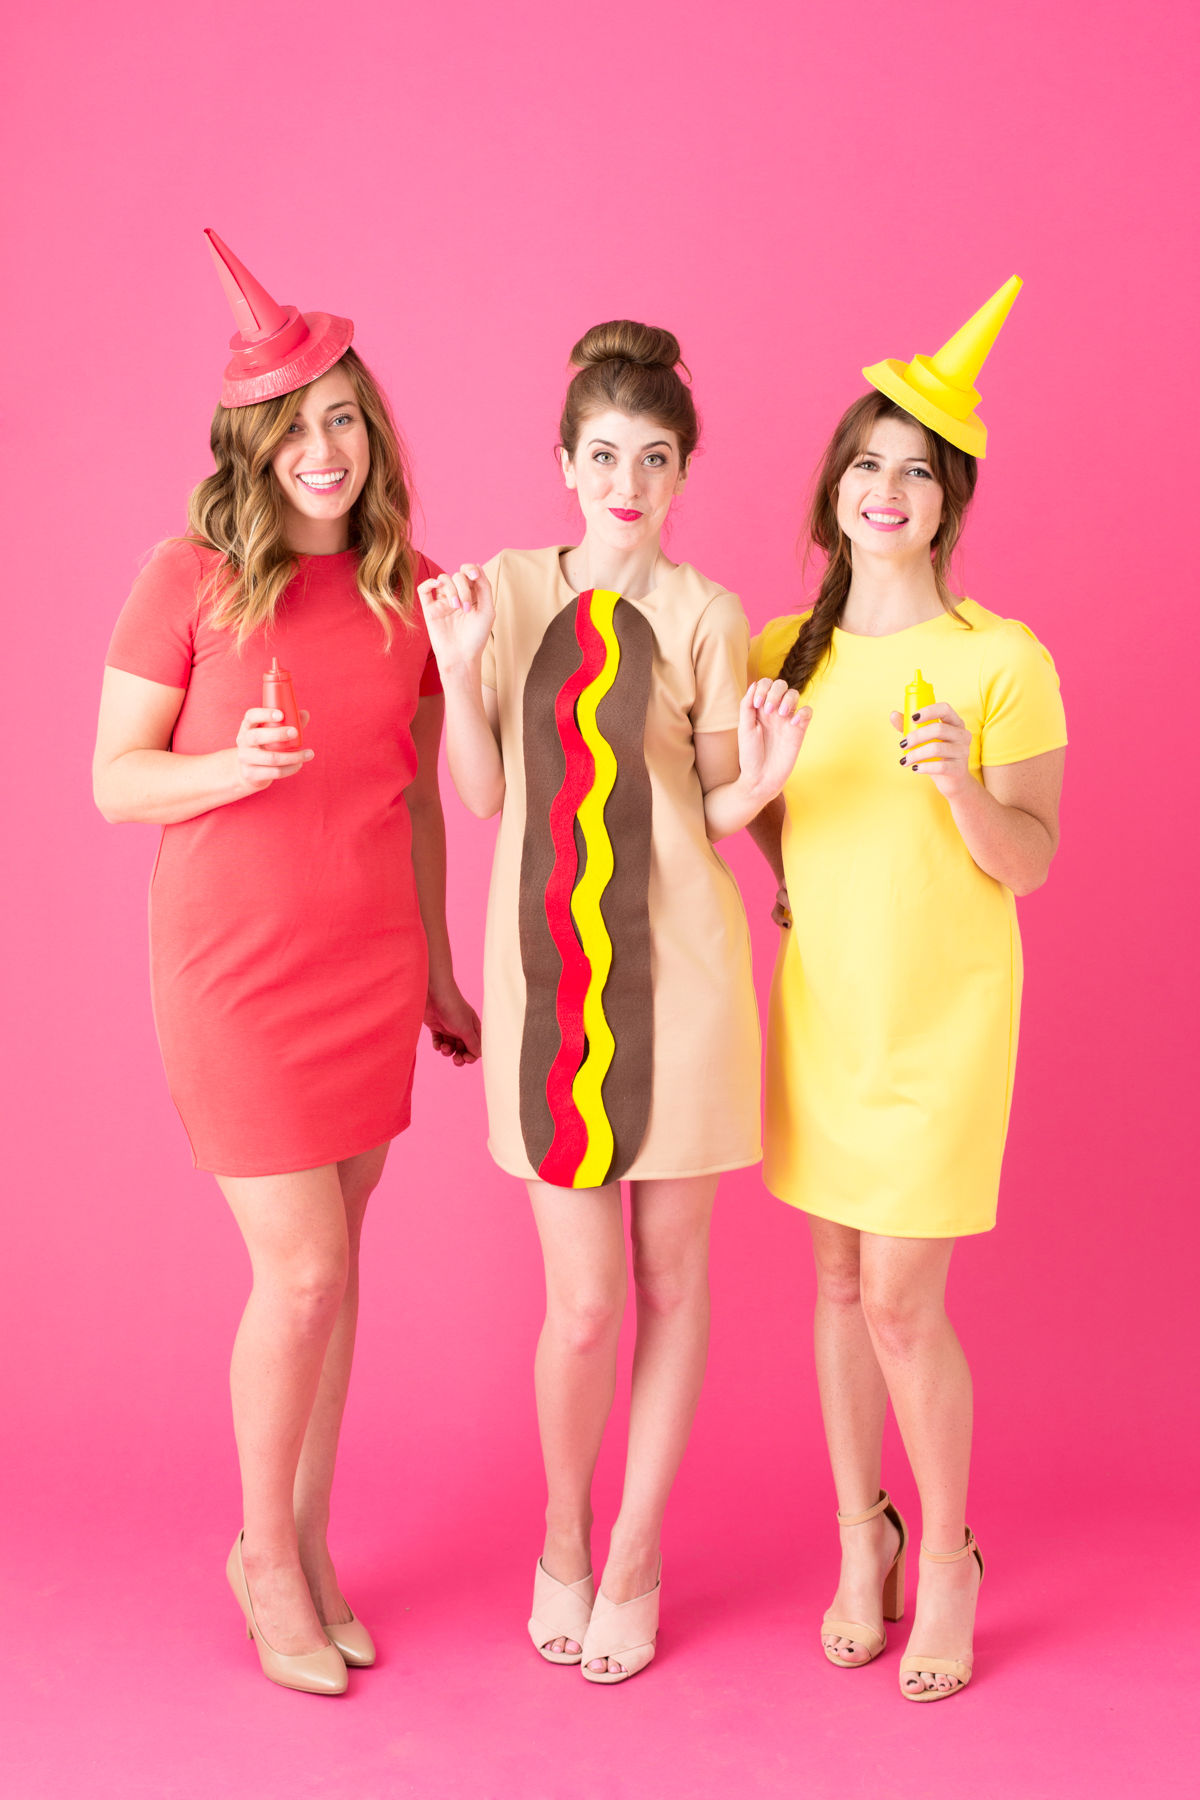 DIY Hot Dog Costume (+ Last Chance for FREE Shipping